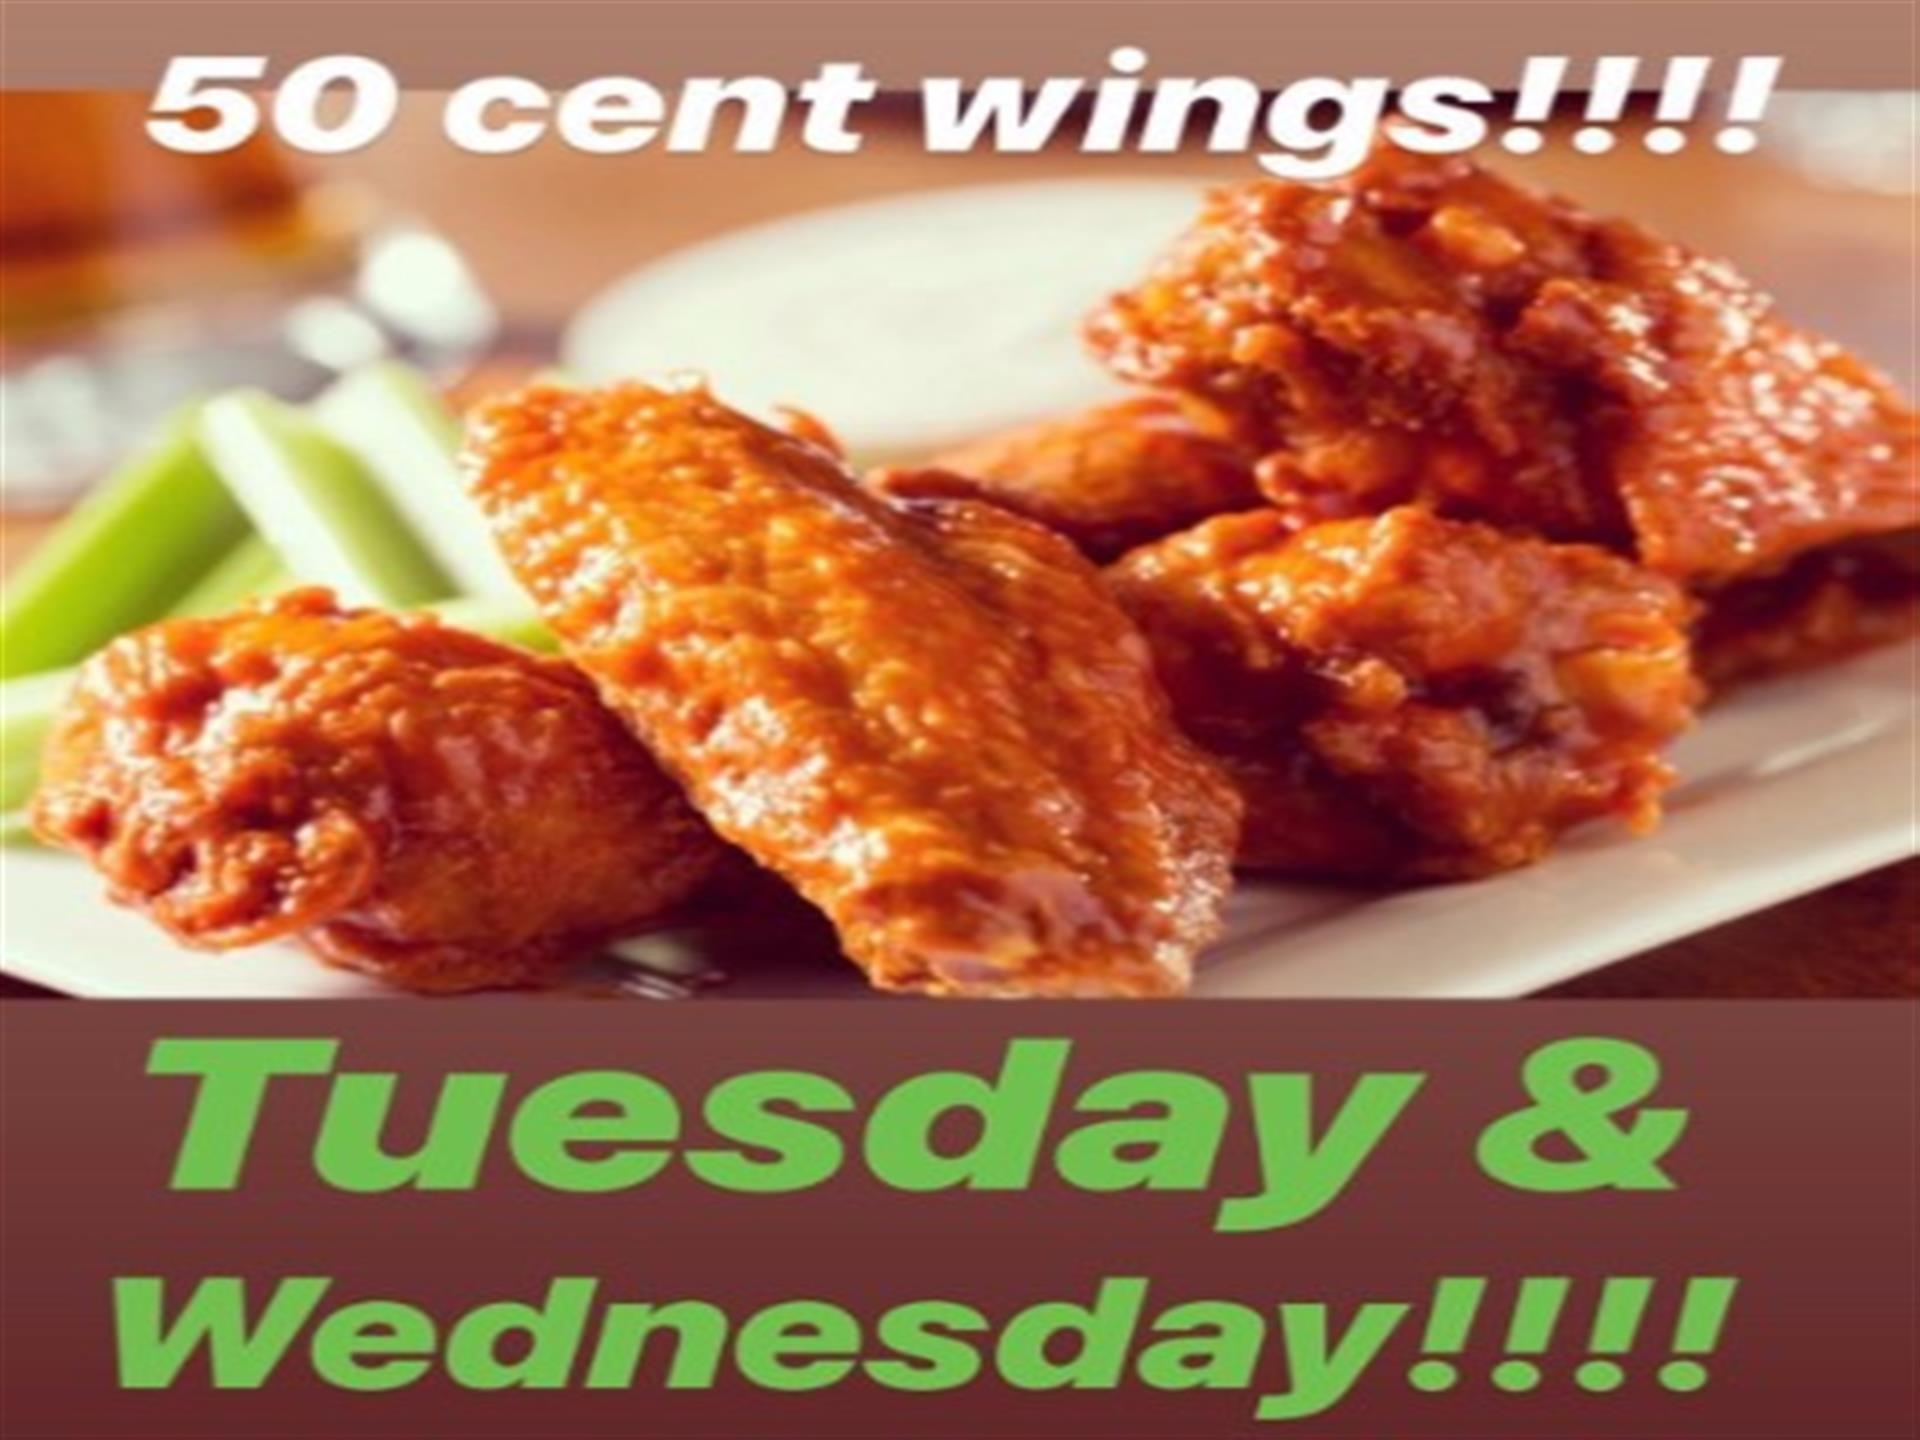 50 cent wings, tuesday & wednesday with buffalo wings